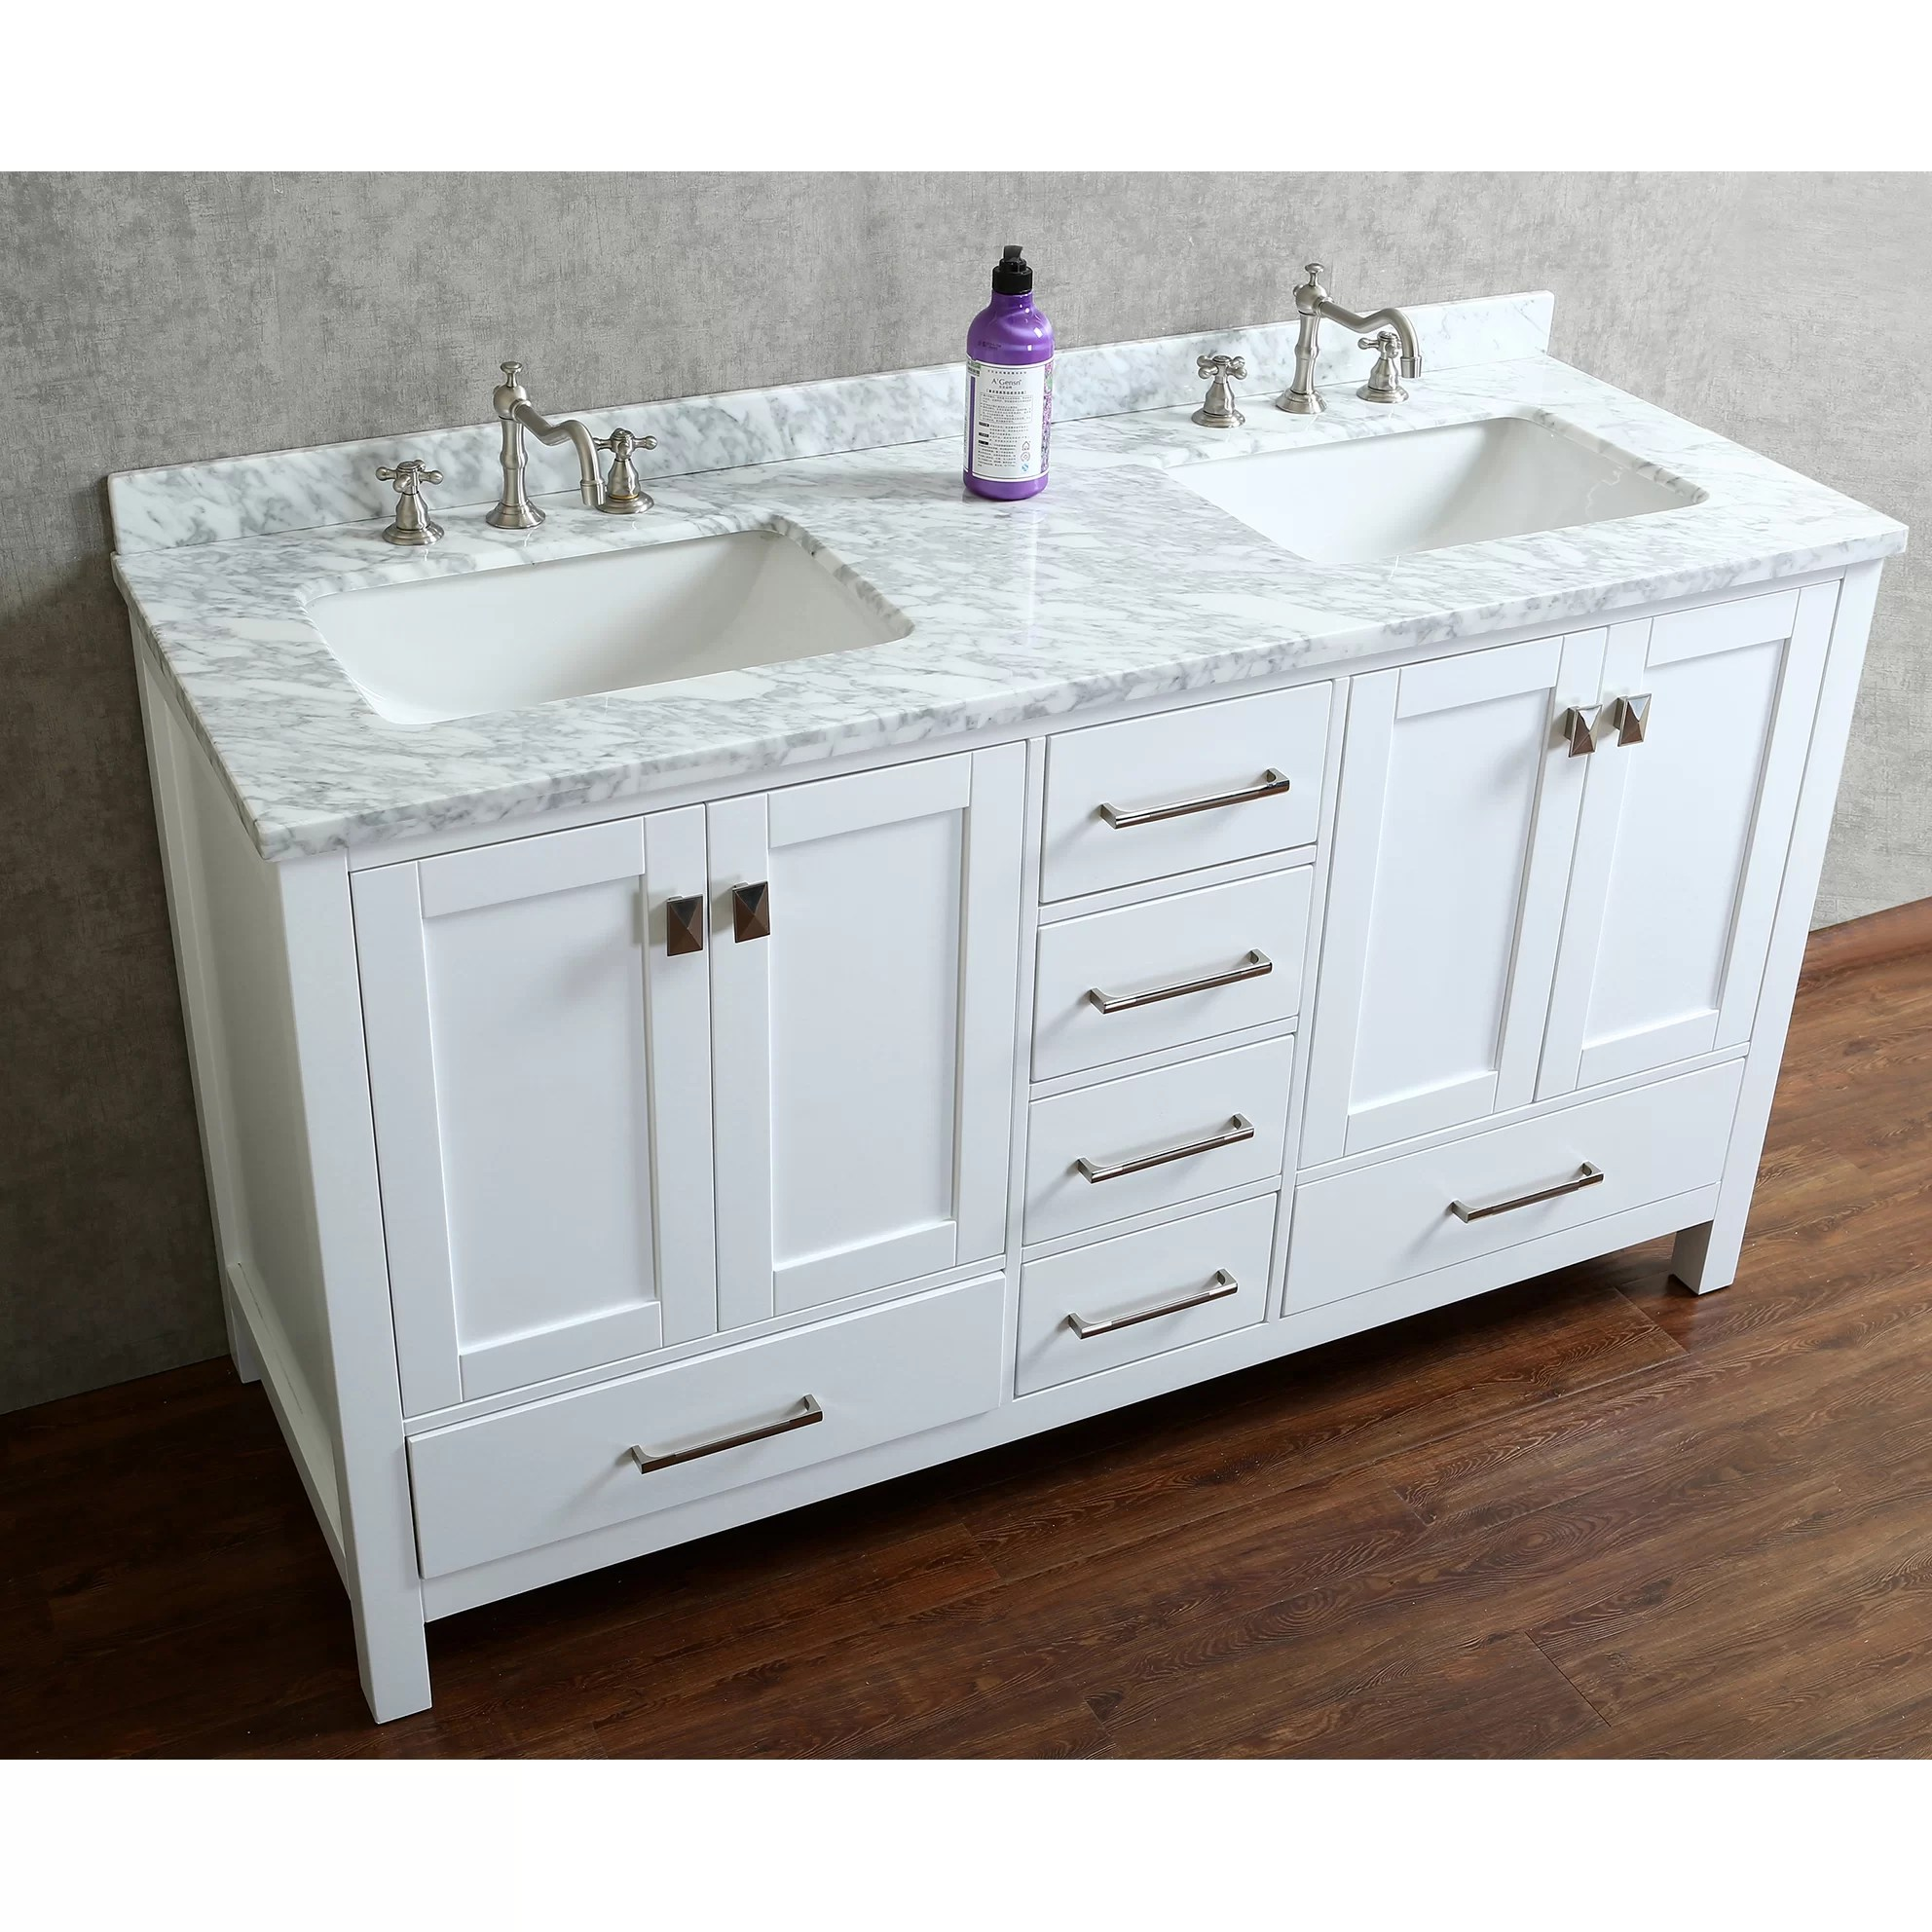 Ari Kitchen  Bath Bella 60 Double Bathroom Vanity Set